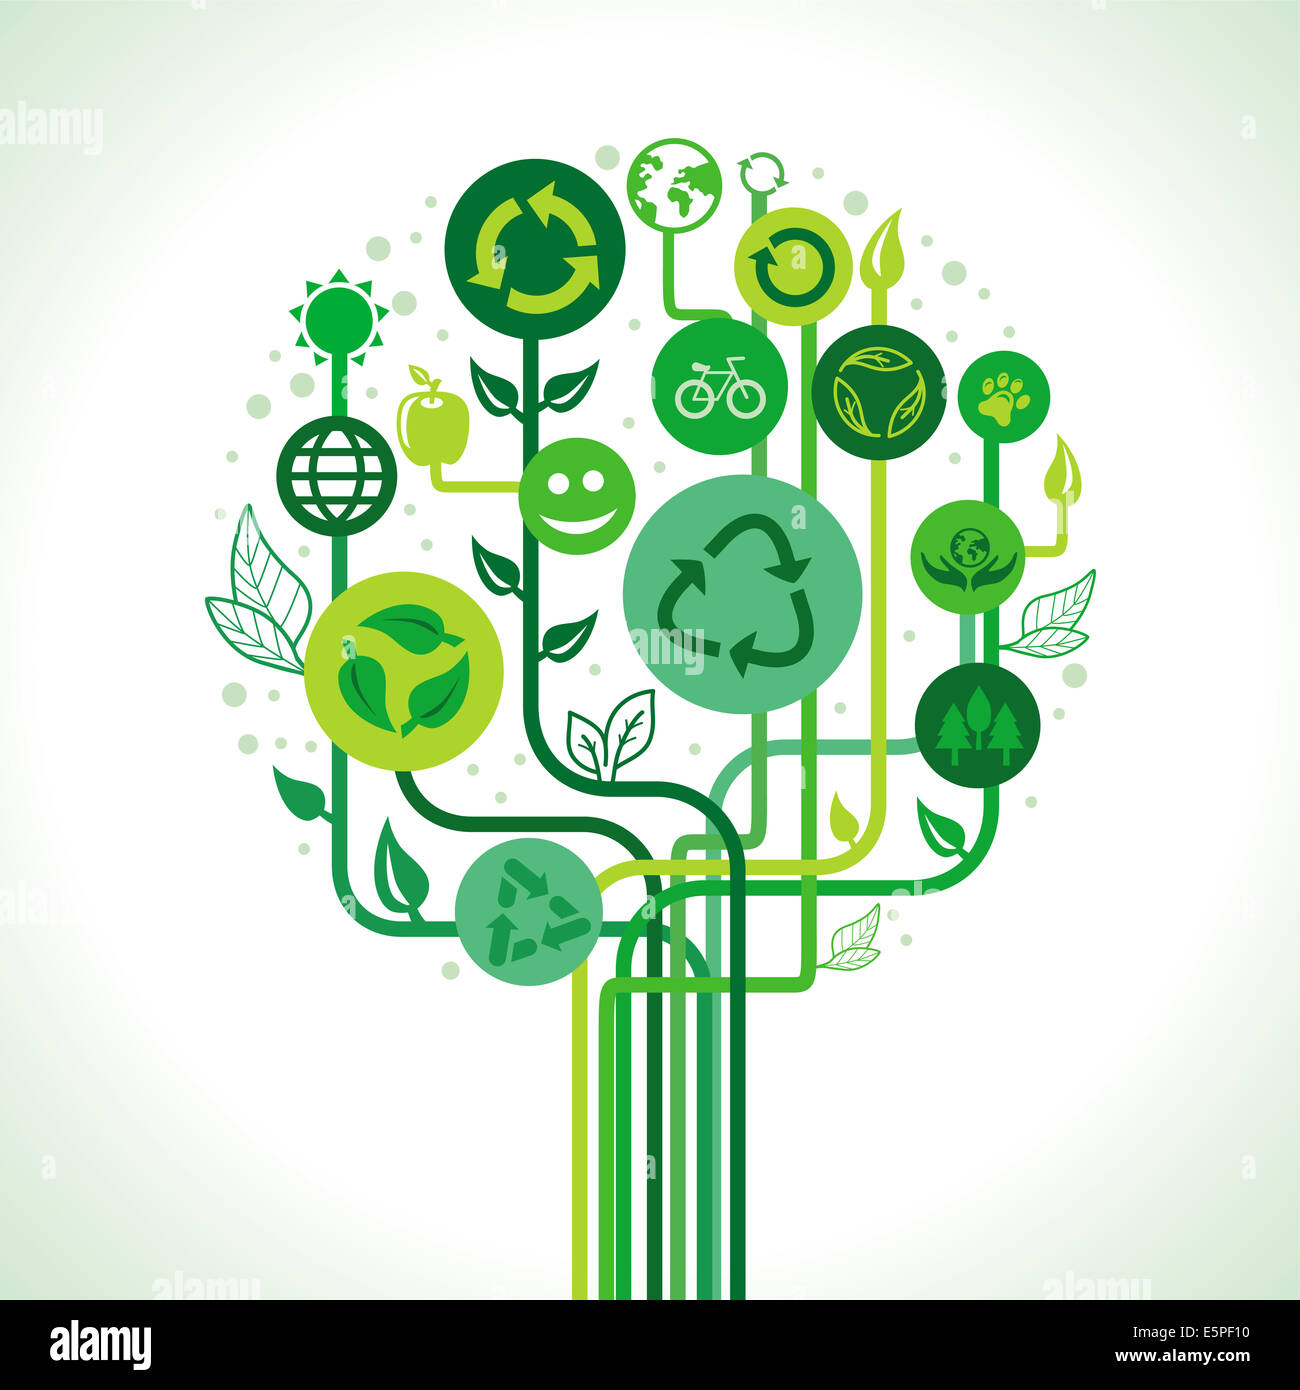 Ecology concept - abstract green tree avec recycler des signes et symboles Photo Stock